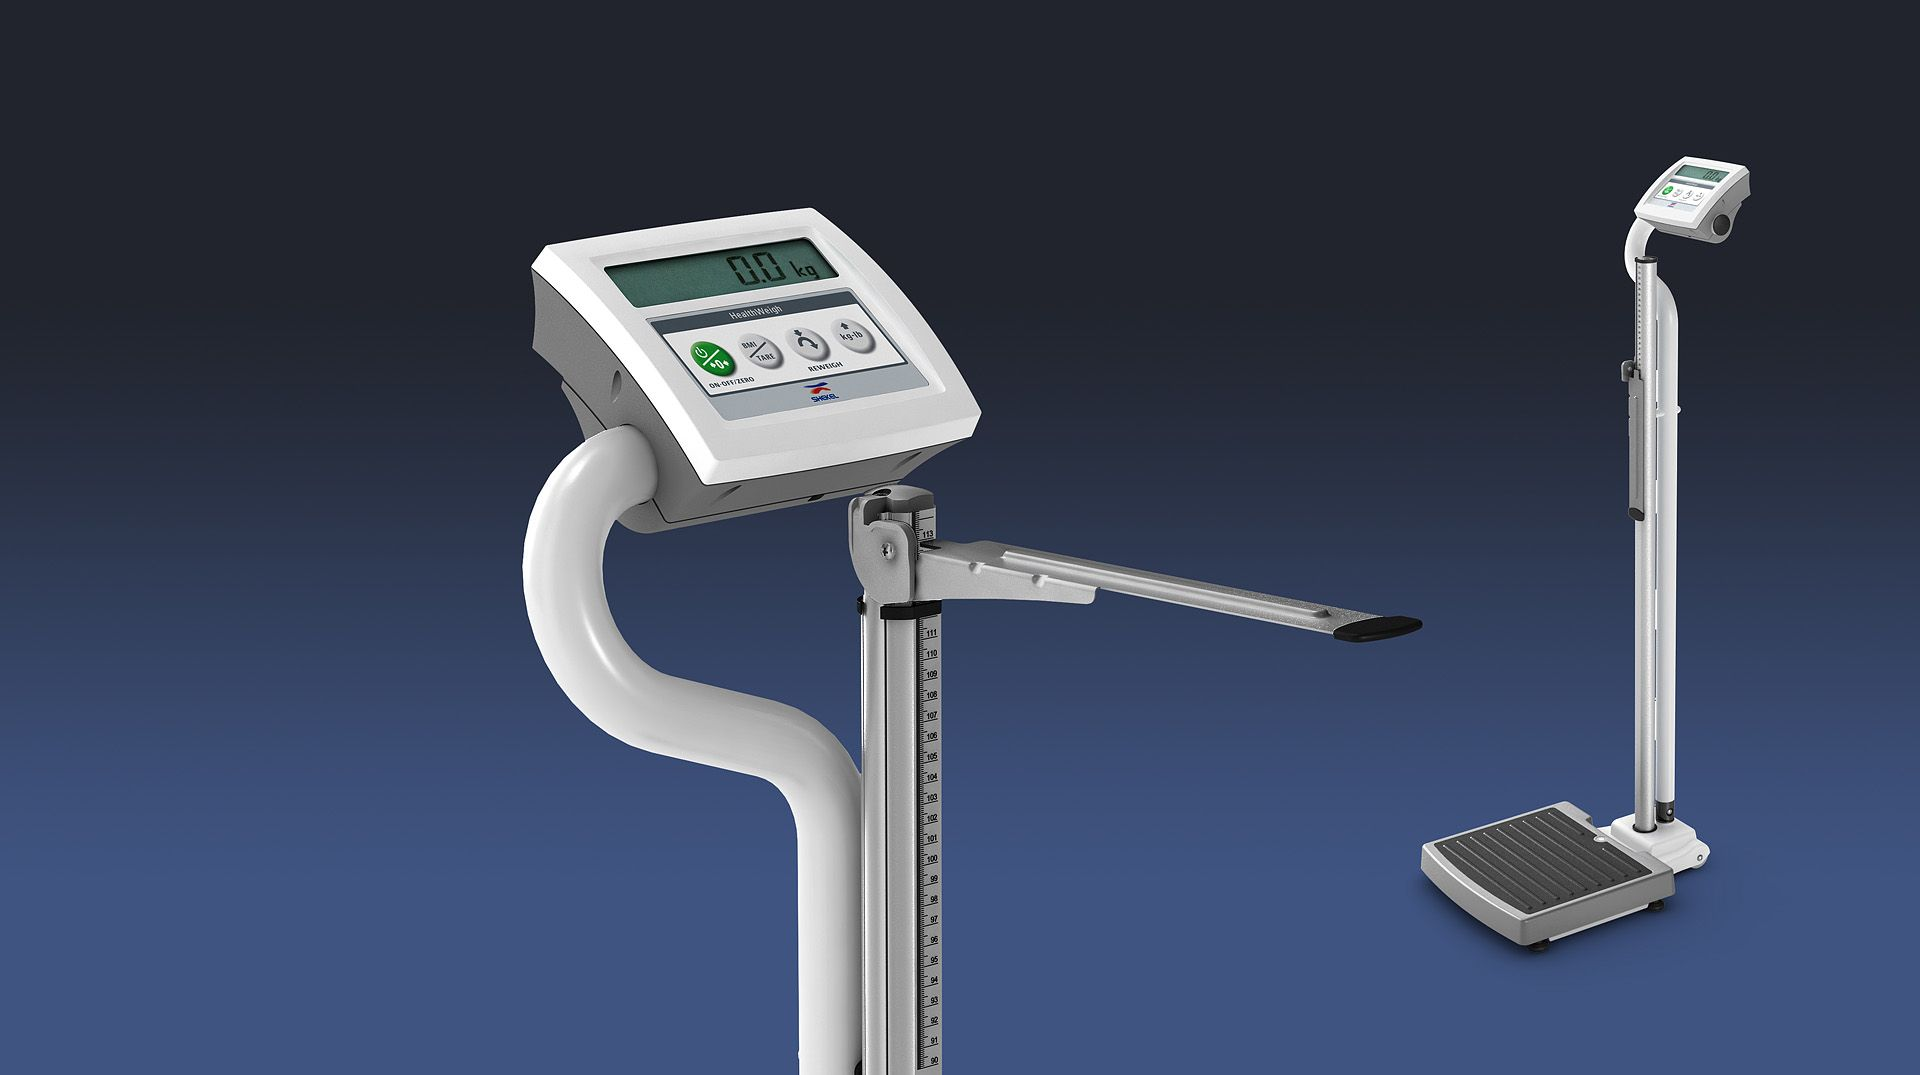 A series of healthcare scales done for shekel scales a